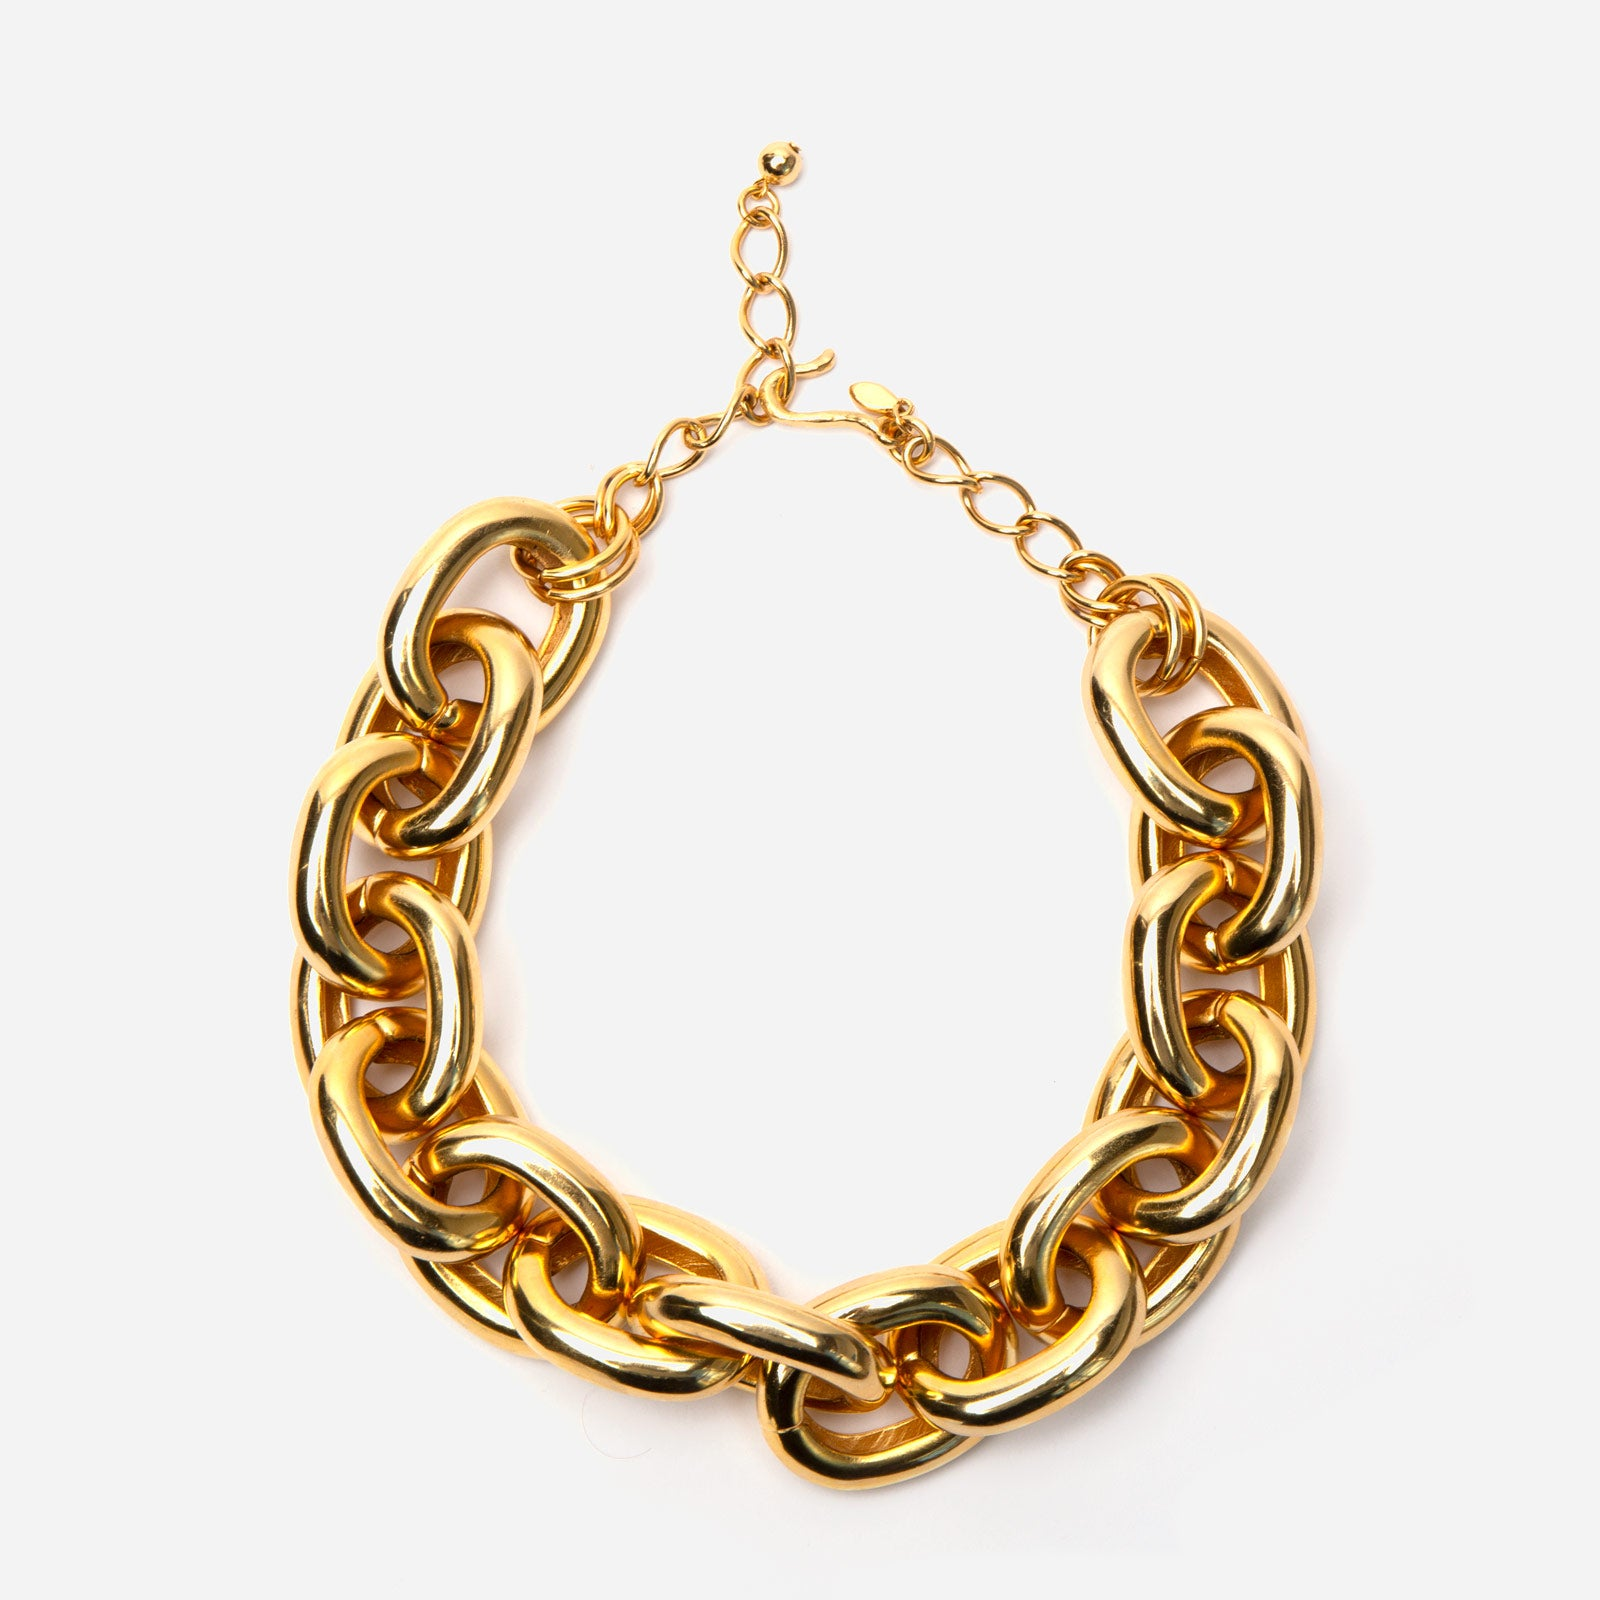 Grand Chain Link Necklace - Frances Valentine